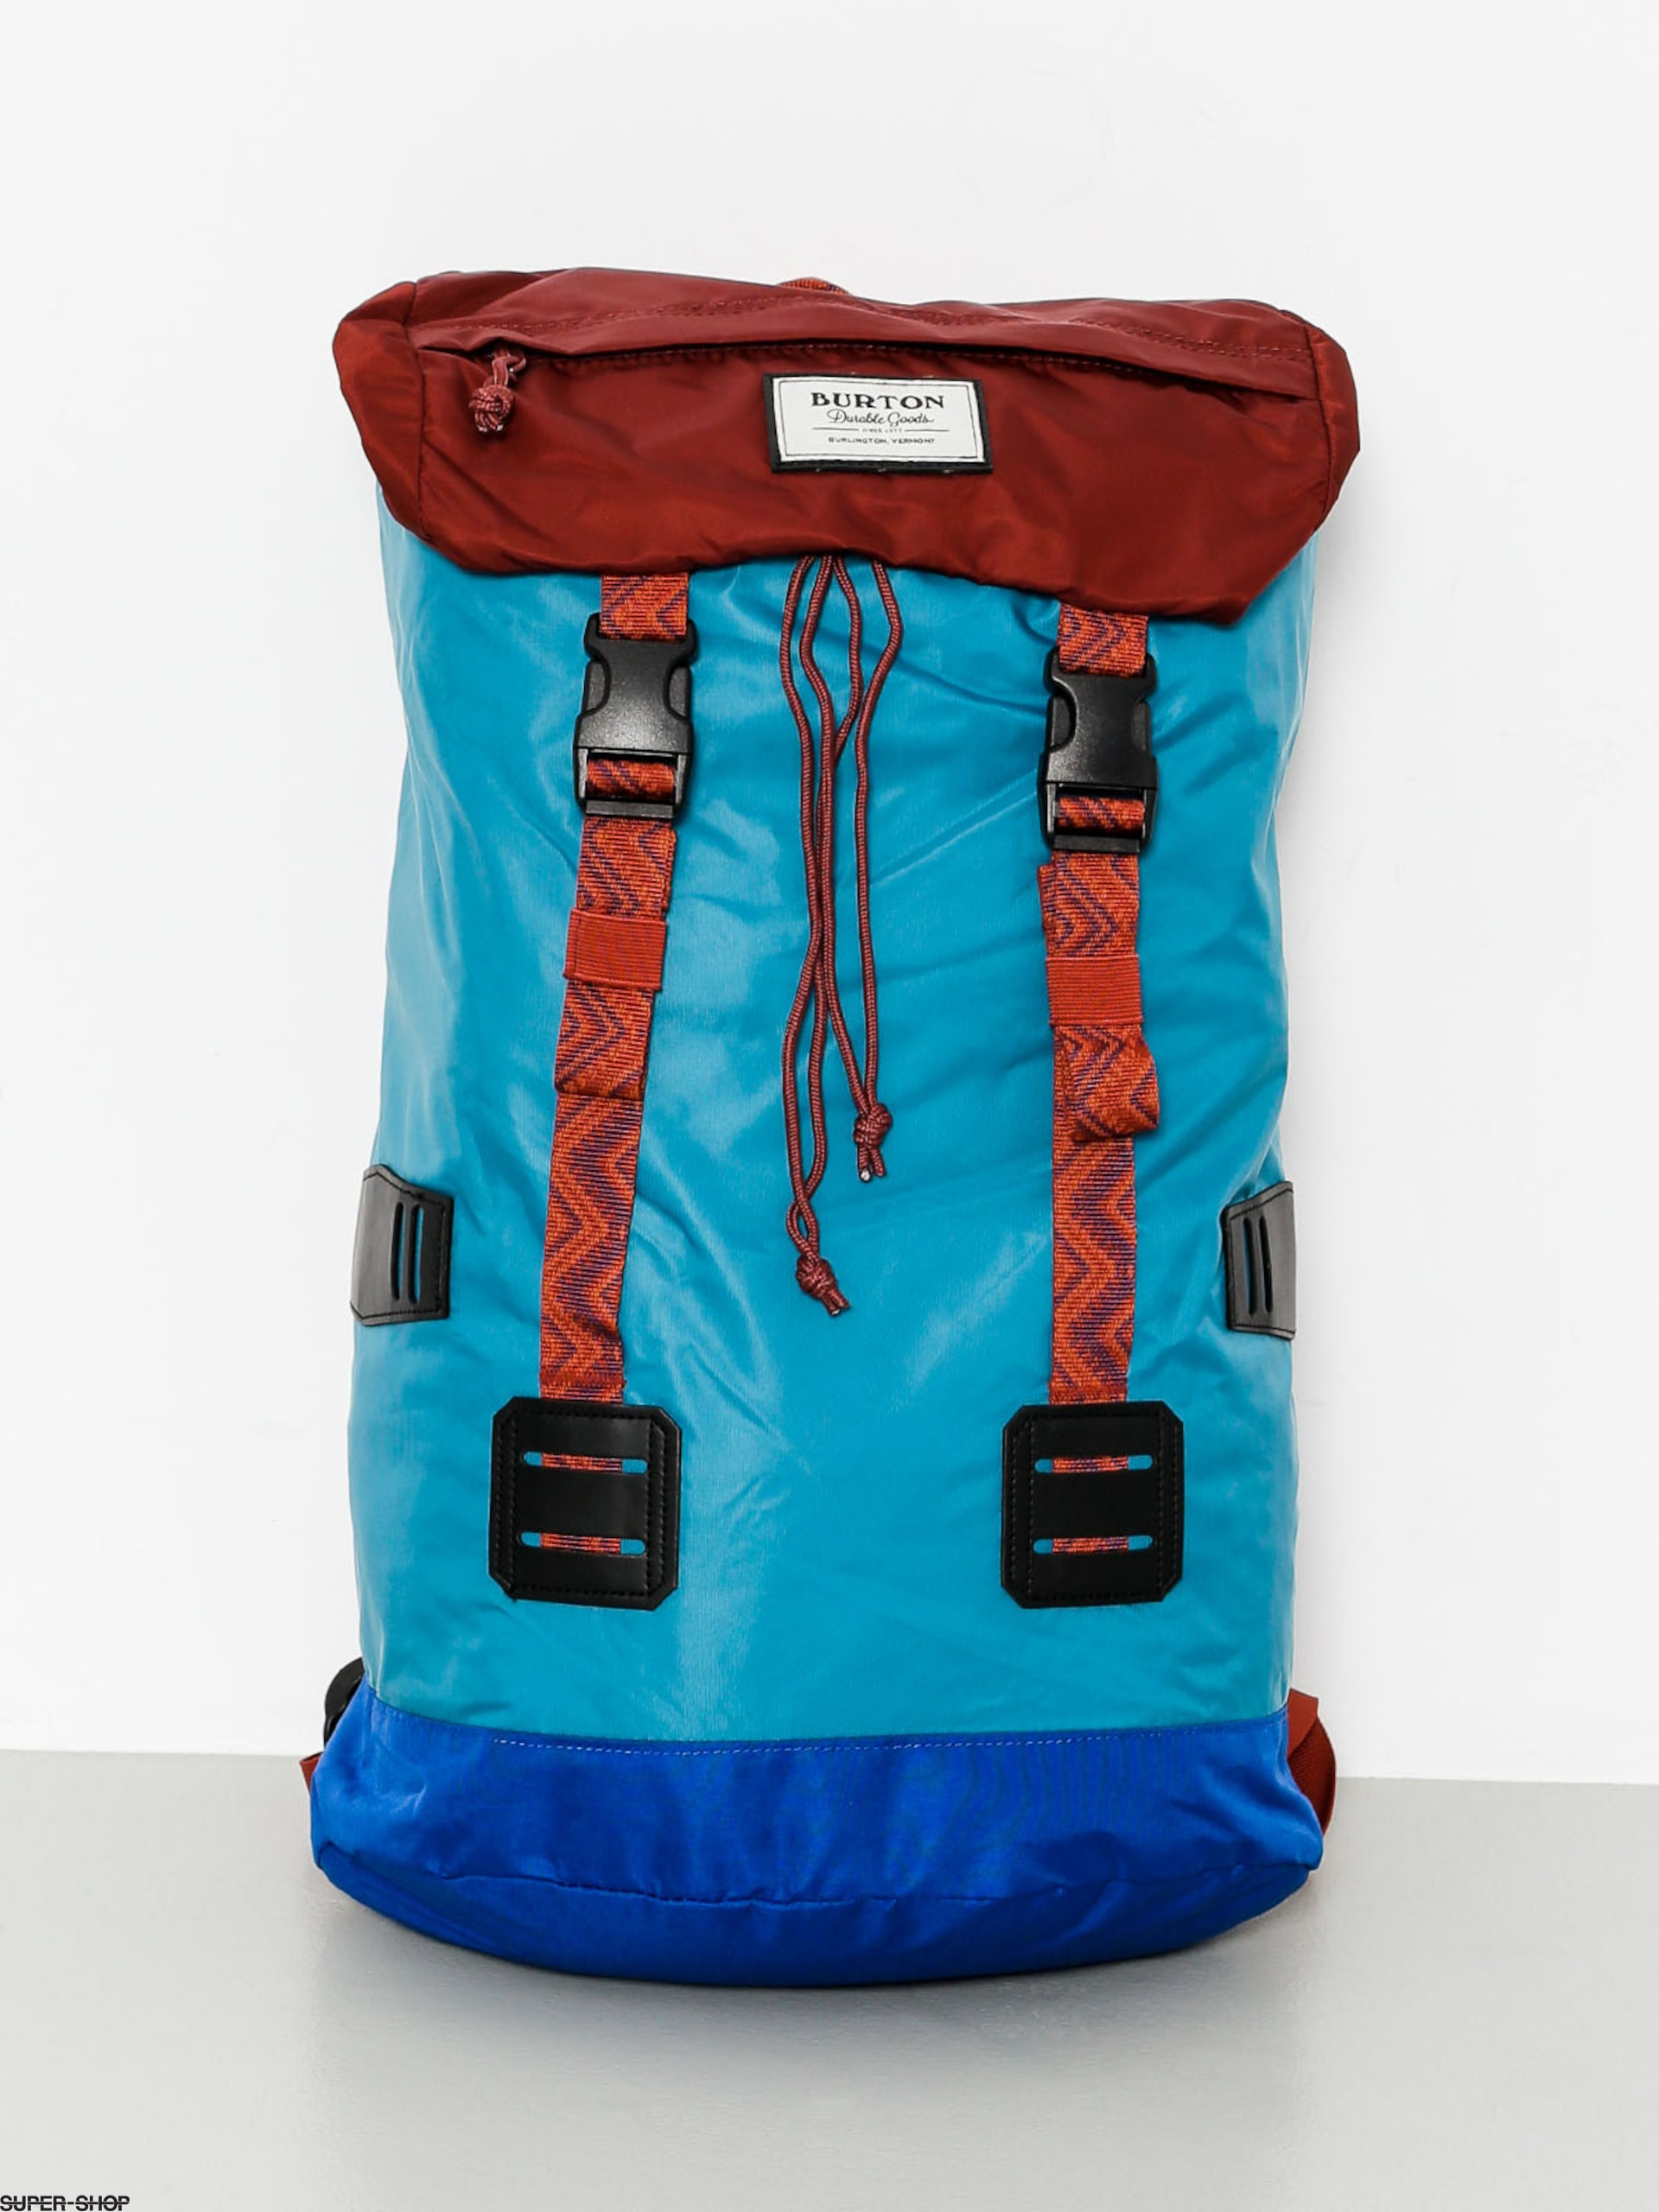 Burton Rucksack Wms Tinder Wmn (jaded flight satin)